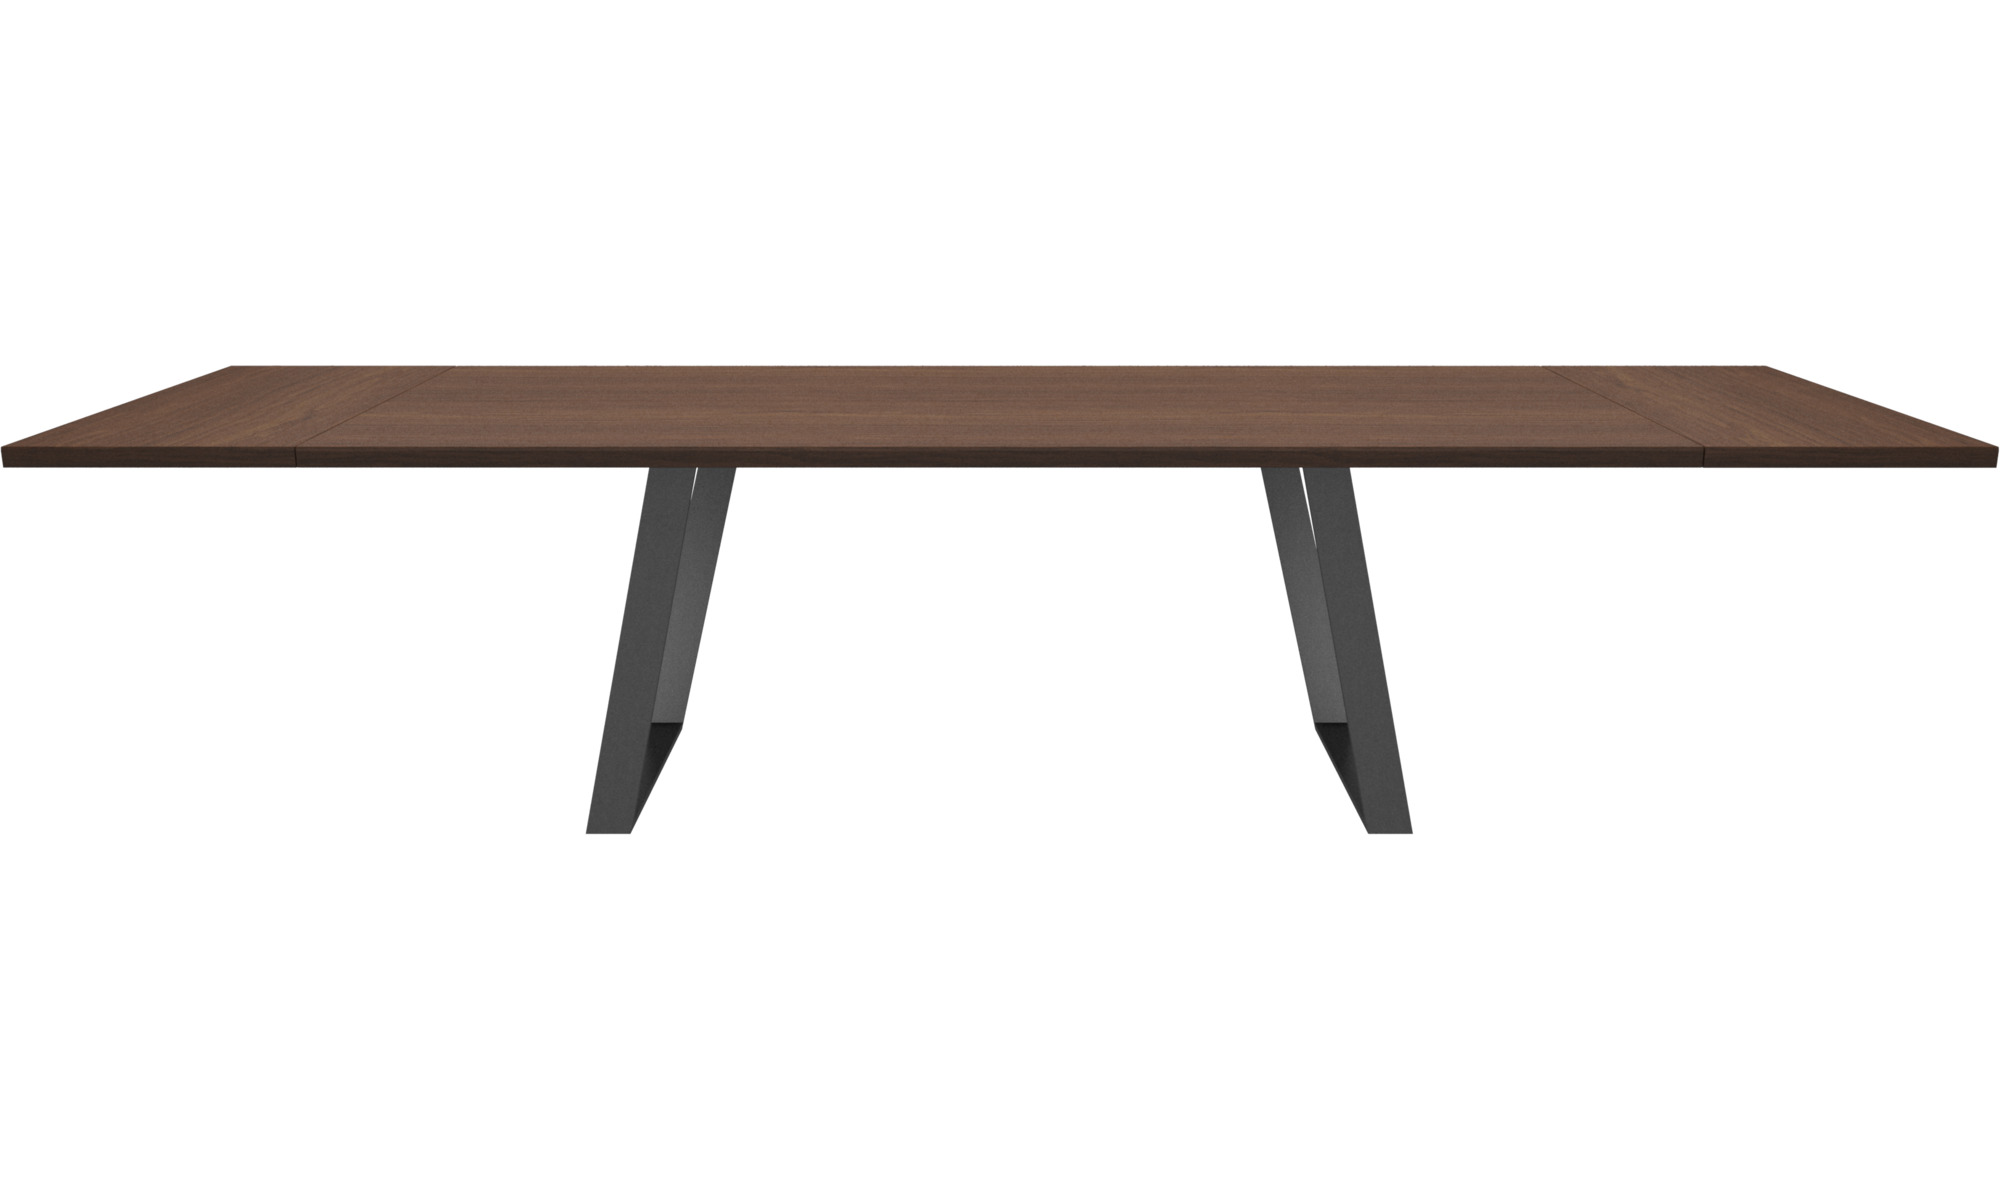 Dining tables Vancouver table with supplementary tabletop